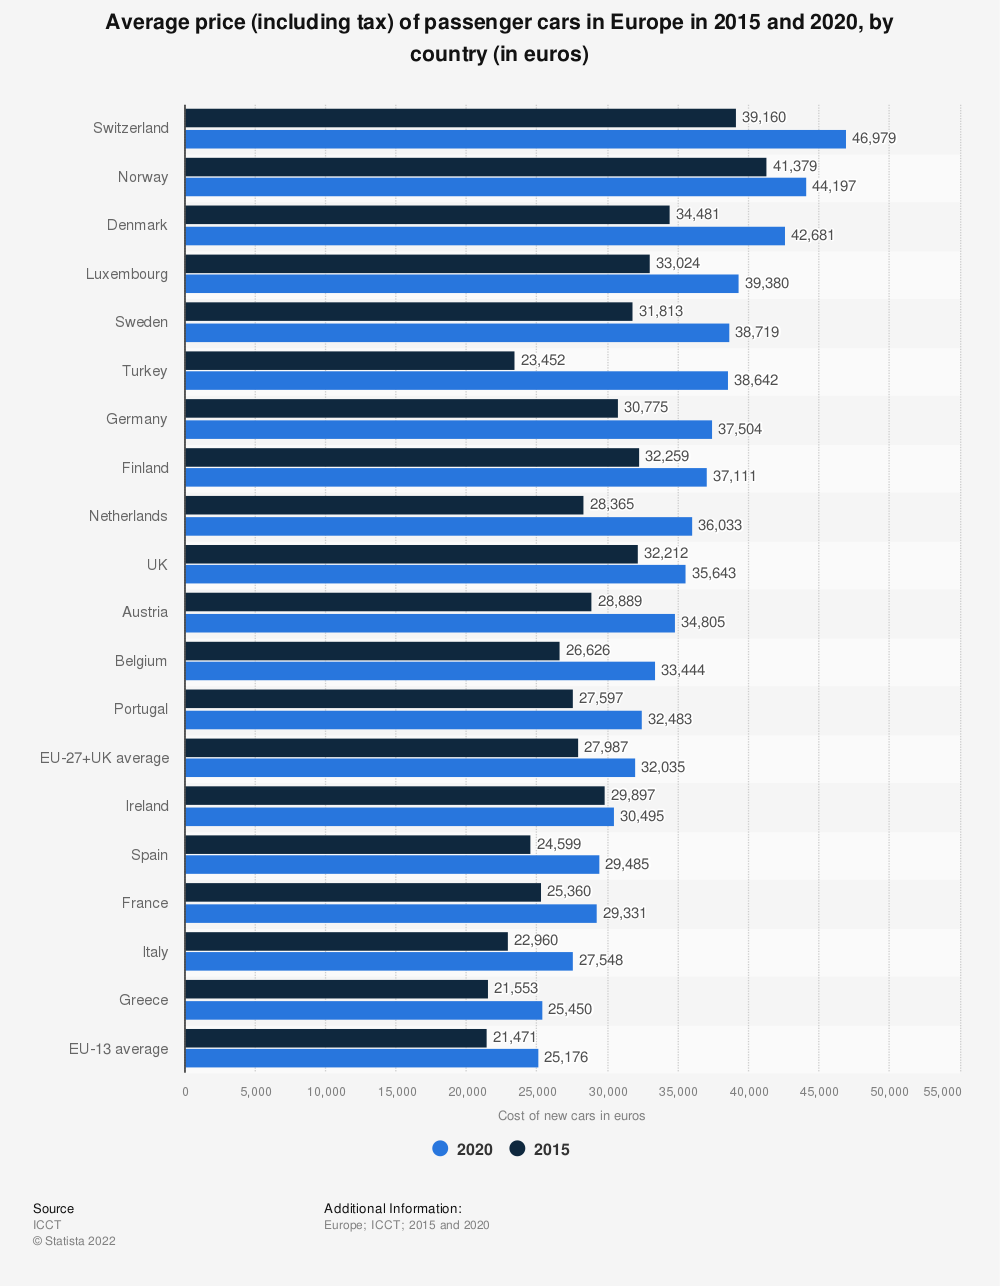 Statistic: Average price (including tax) of passenger cars in the EU from 2013 to 2015, by country* (in euros) | Statista